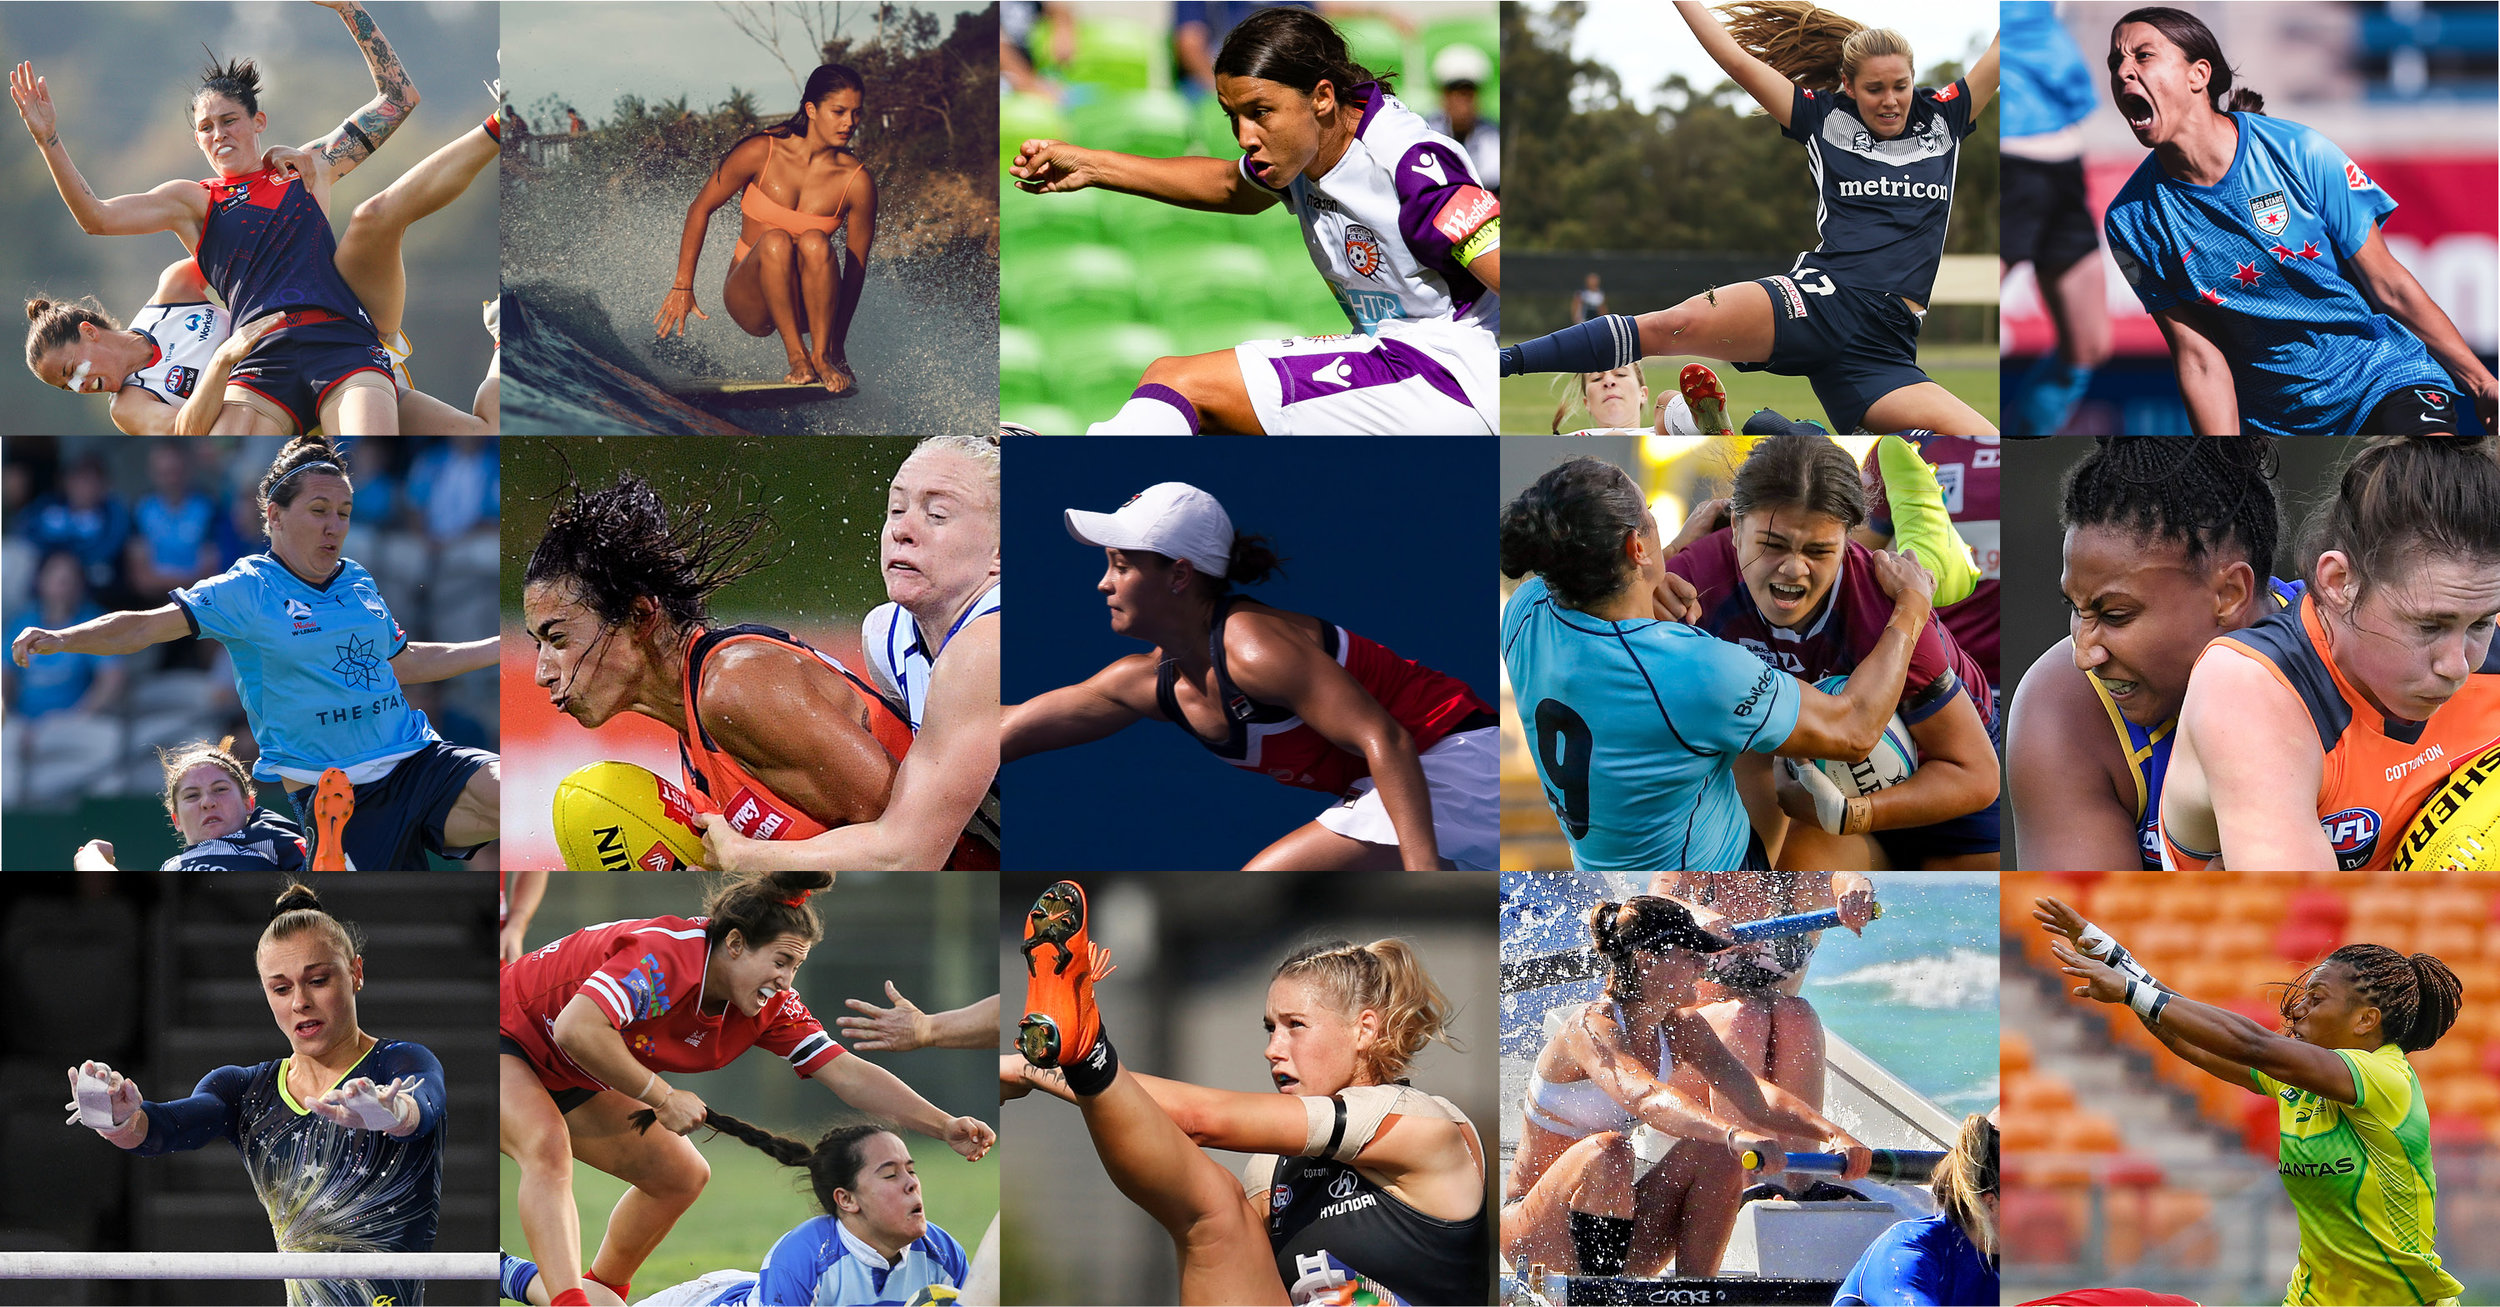 Top row left to right:  Daniel Pockett Vic AFLW; Richard Morgan NSW surfing; Luke Hemer Vic soccer; Scott Barbour Vic soccer; Rachel Bach Vic soccer.  Second row left to right:  Craig Golding NSW soccer; Dan Himbrechts NSW AFLW; Craig Golding NSW tennis; Karen Watson NSW rugby; Dan Peled Qld AFLW.  Third row  left to right: Mark Avellino Vic gymnastics; Marina Neil NSW rugby; Michael Willson Vic AFLW; Andrew Berry Vic surf lifesaving; Karen Watson NSW rugby.